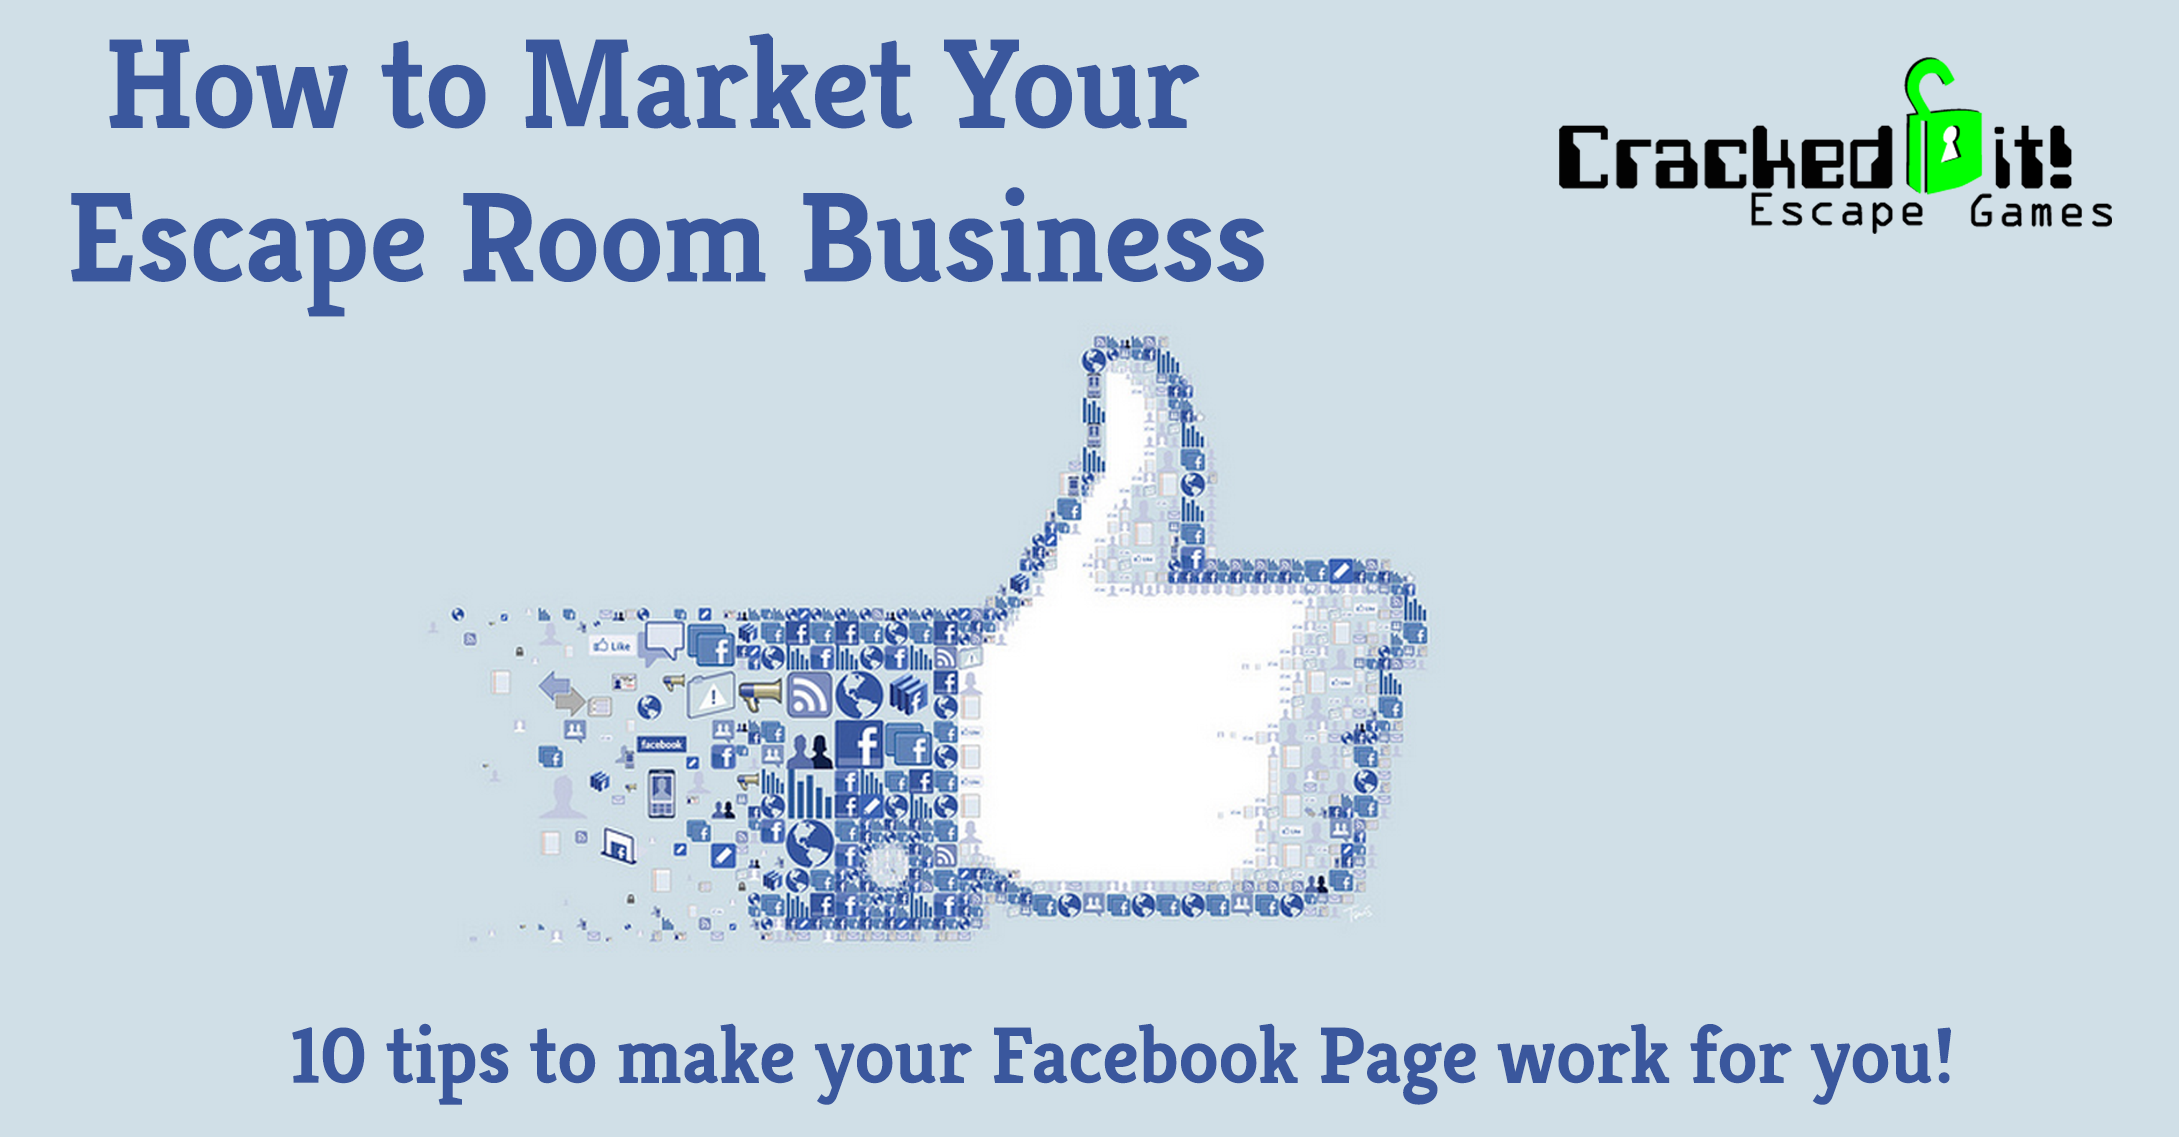 How to Market your Escape Room Business 10 tips to make your Facebook page work for you.